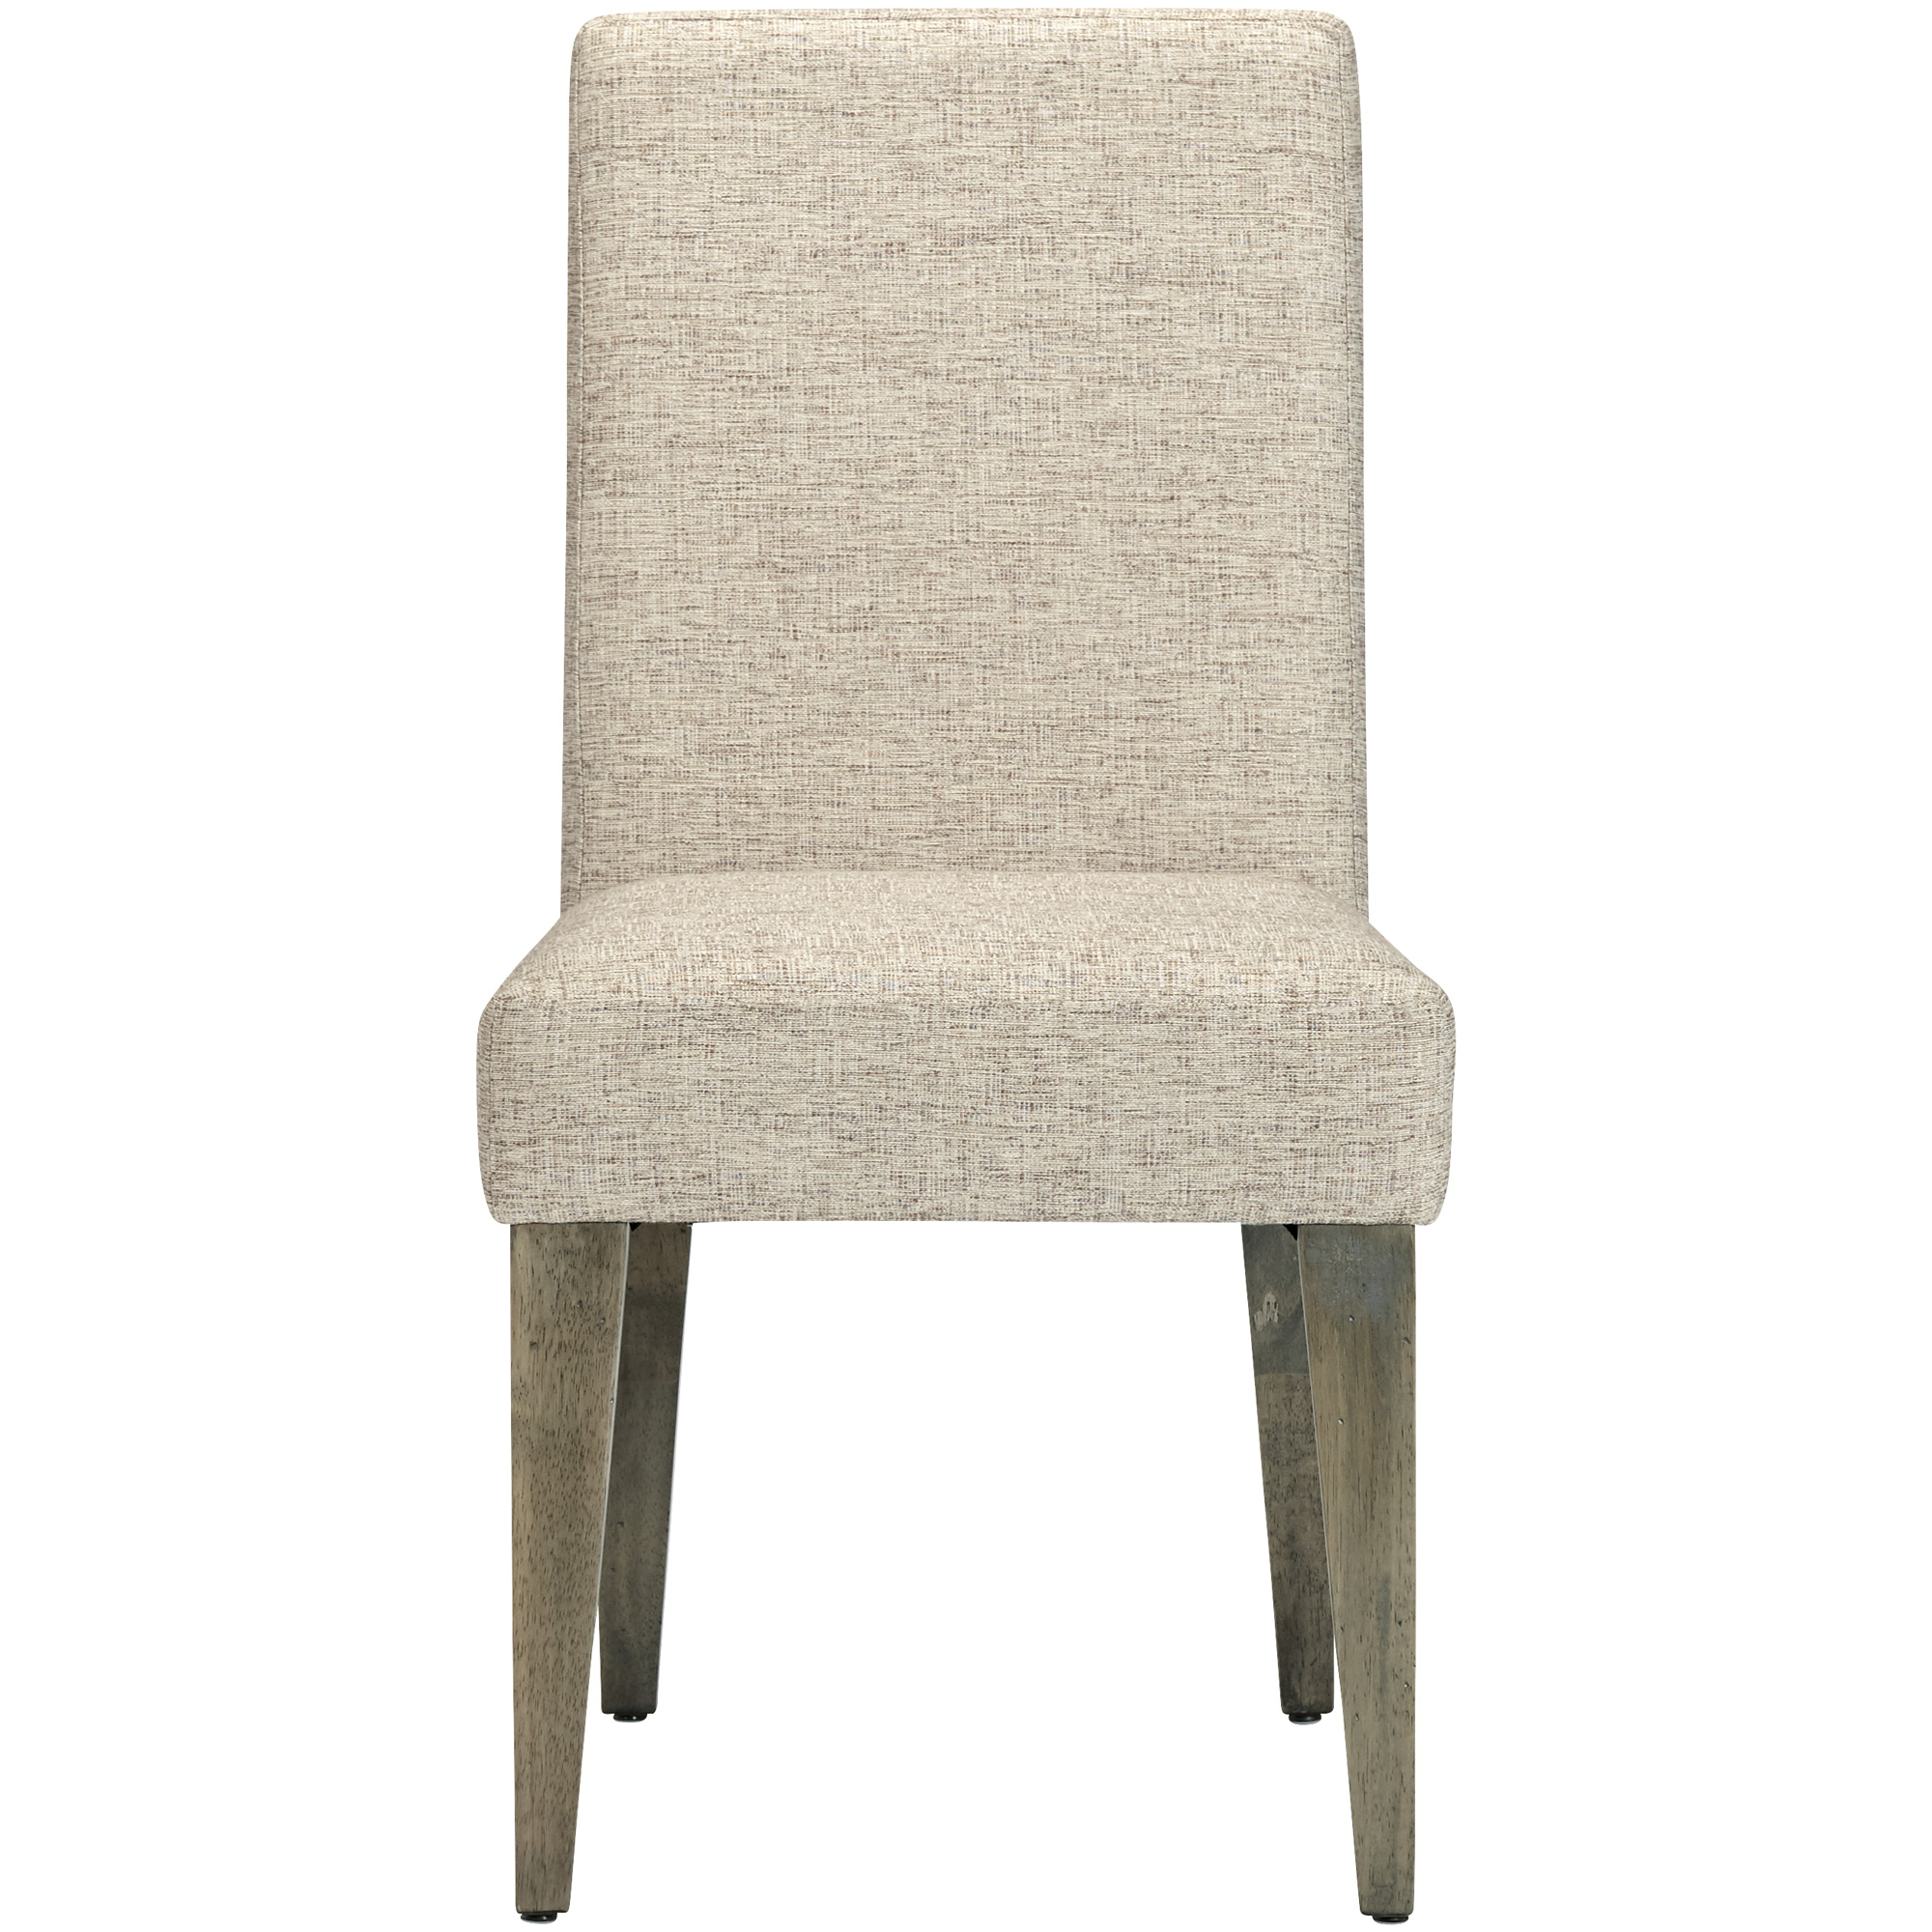 Canadel Furniture | Uptown Mist Gray Upholstered Side Chair